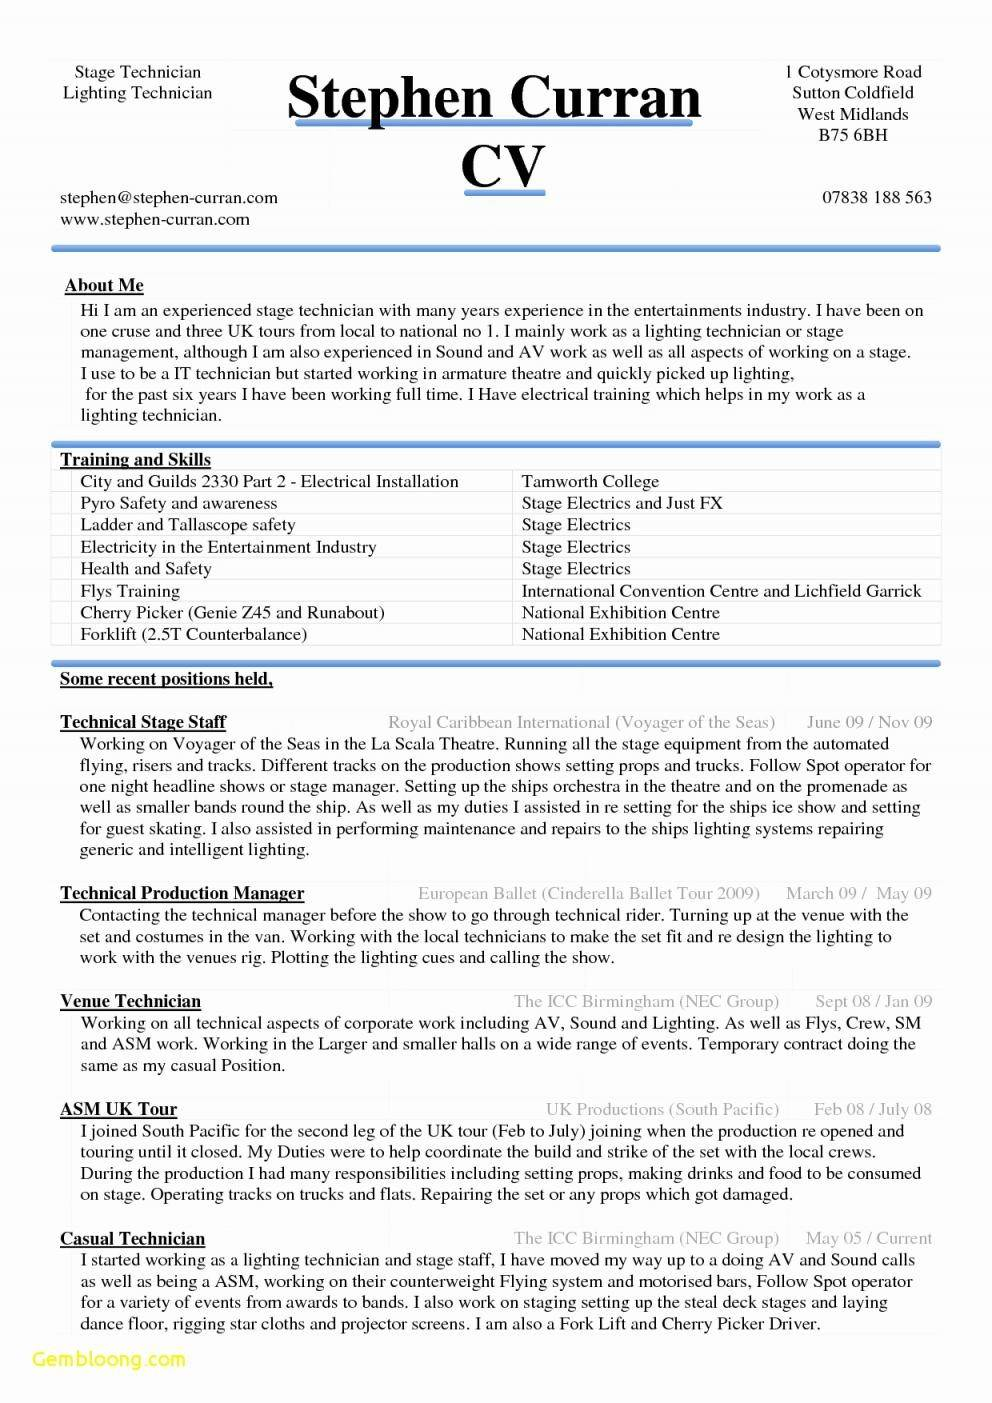 Resume Template Gratis